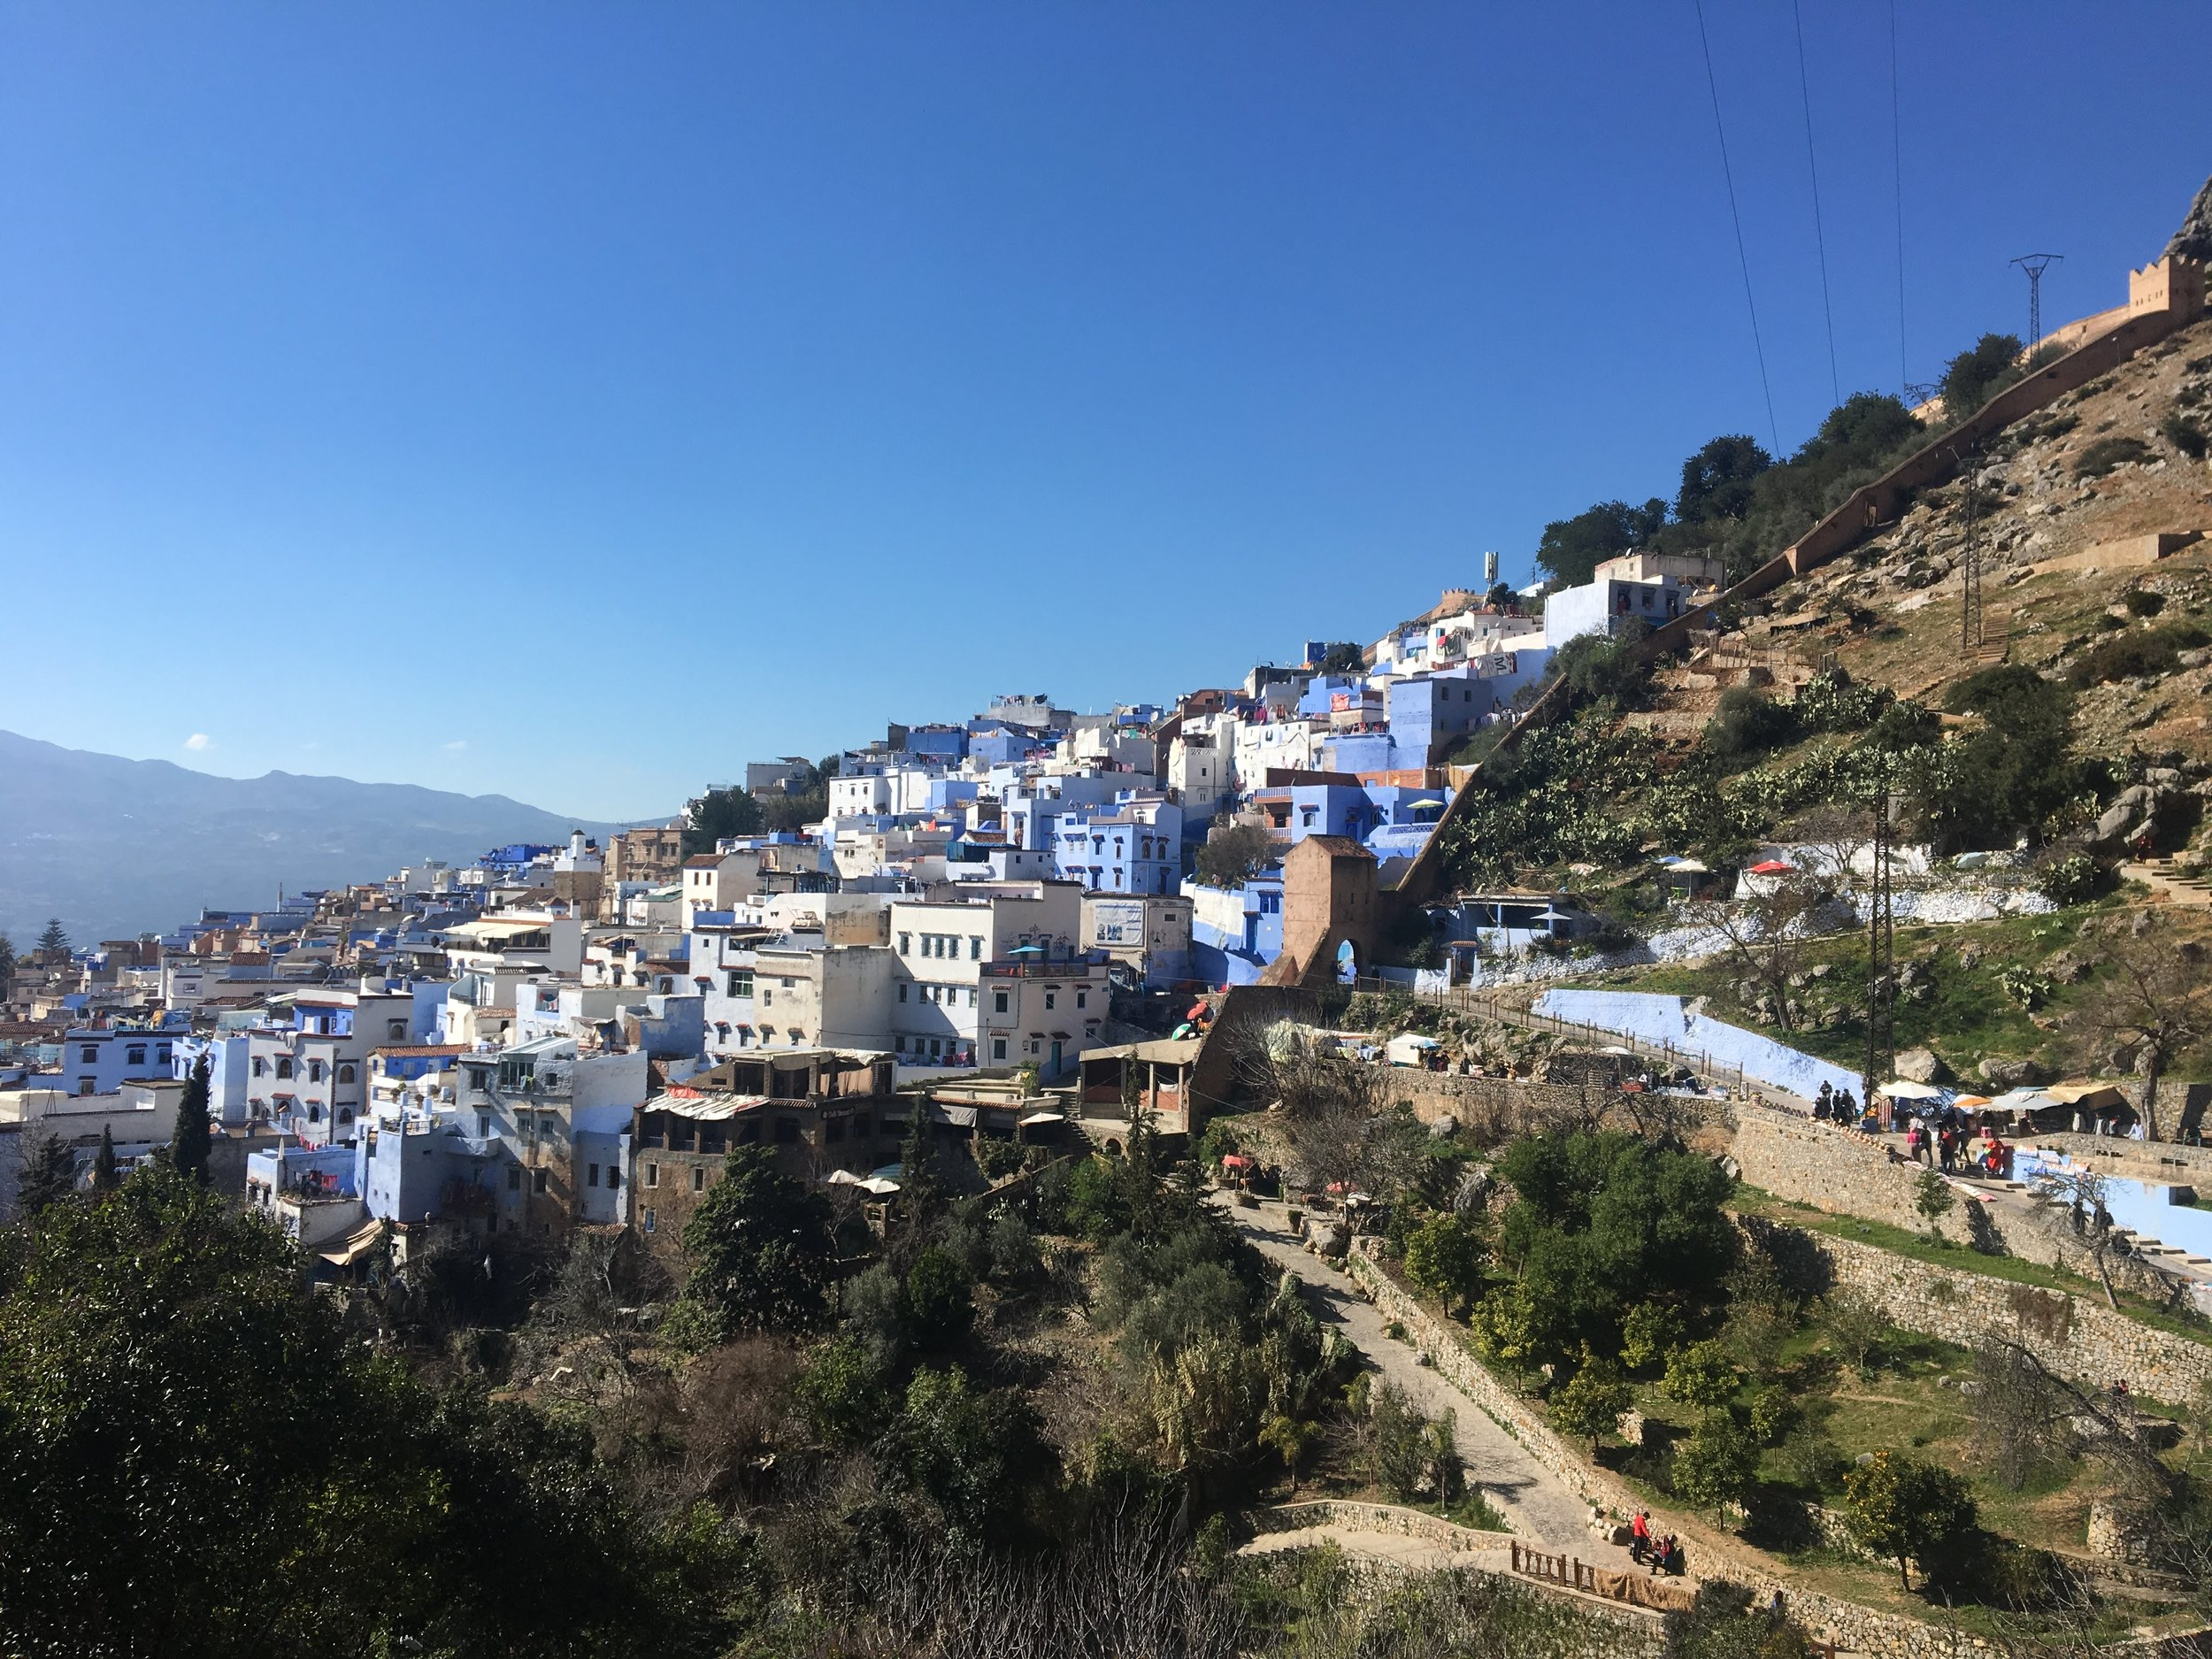 Chefchaouen, the blue city, looks like it was carved into the very mountains themselves. The blue medina that attracts so many tourists is calming and tranquil. Hiking up to the Spanish mosque to catch a glimpse of the view, Chefchaouen does not disappoint at any angle. Photo credit: Fisher, 2019